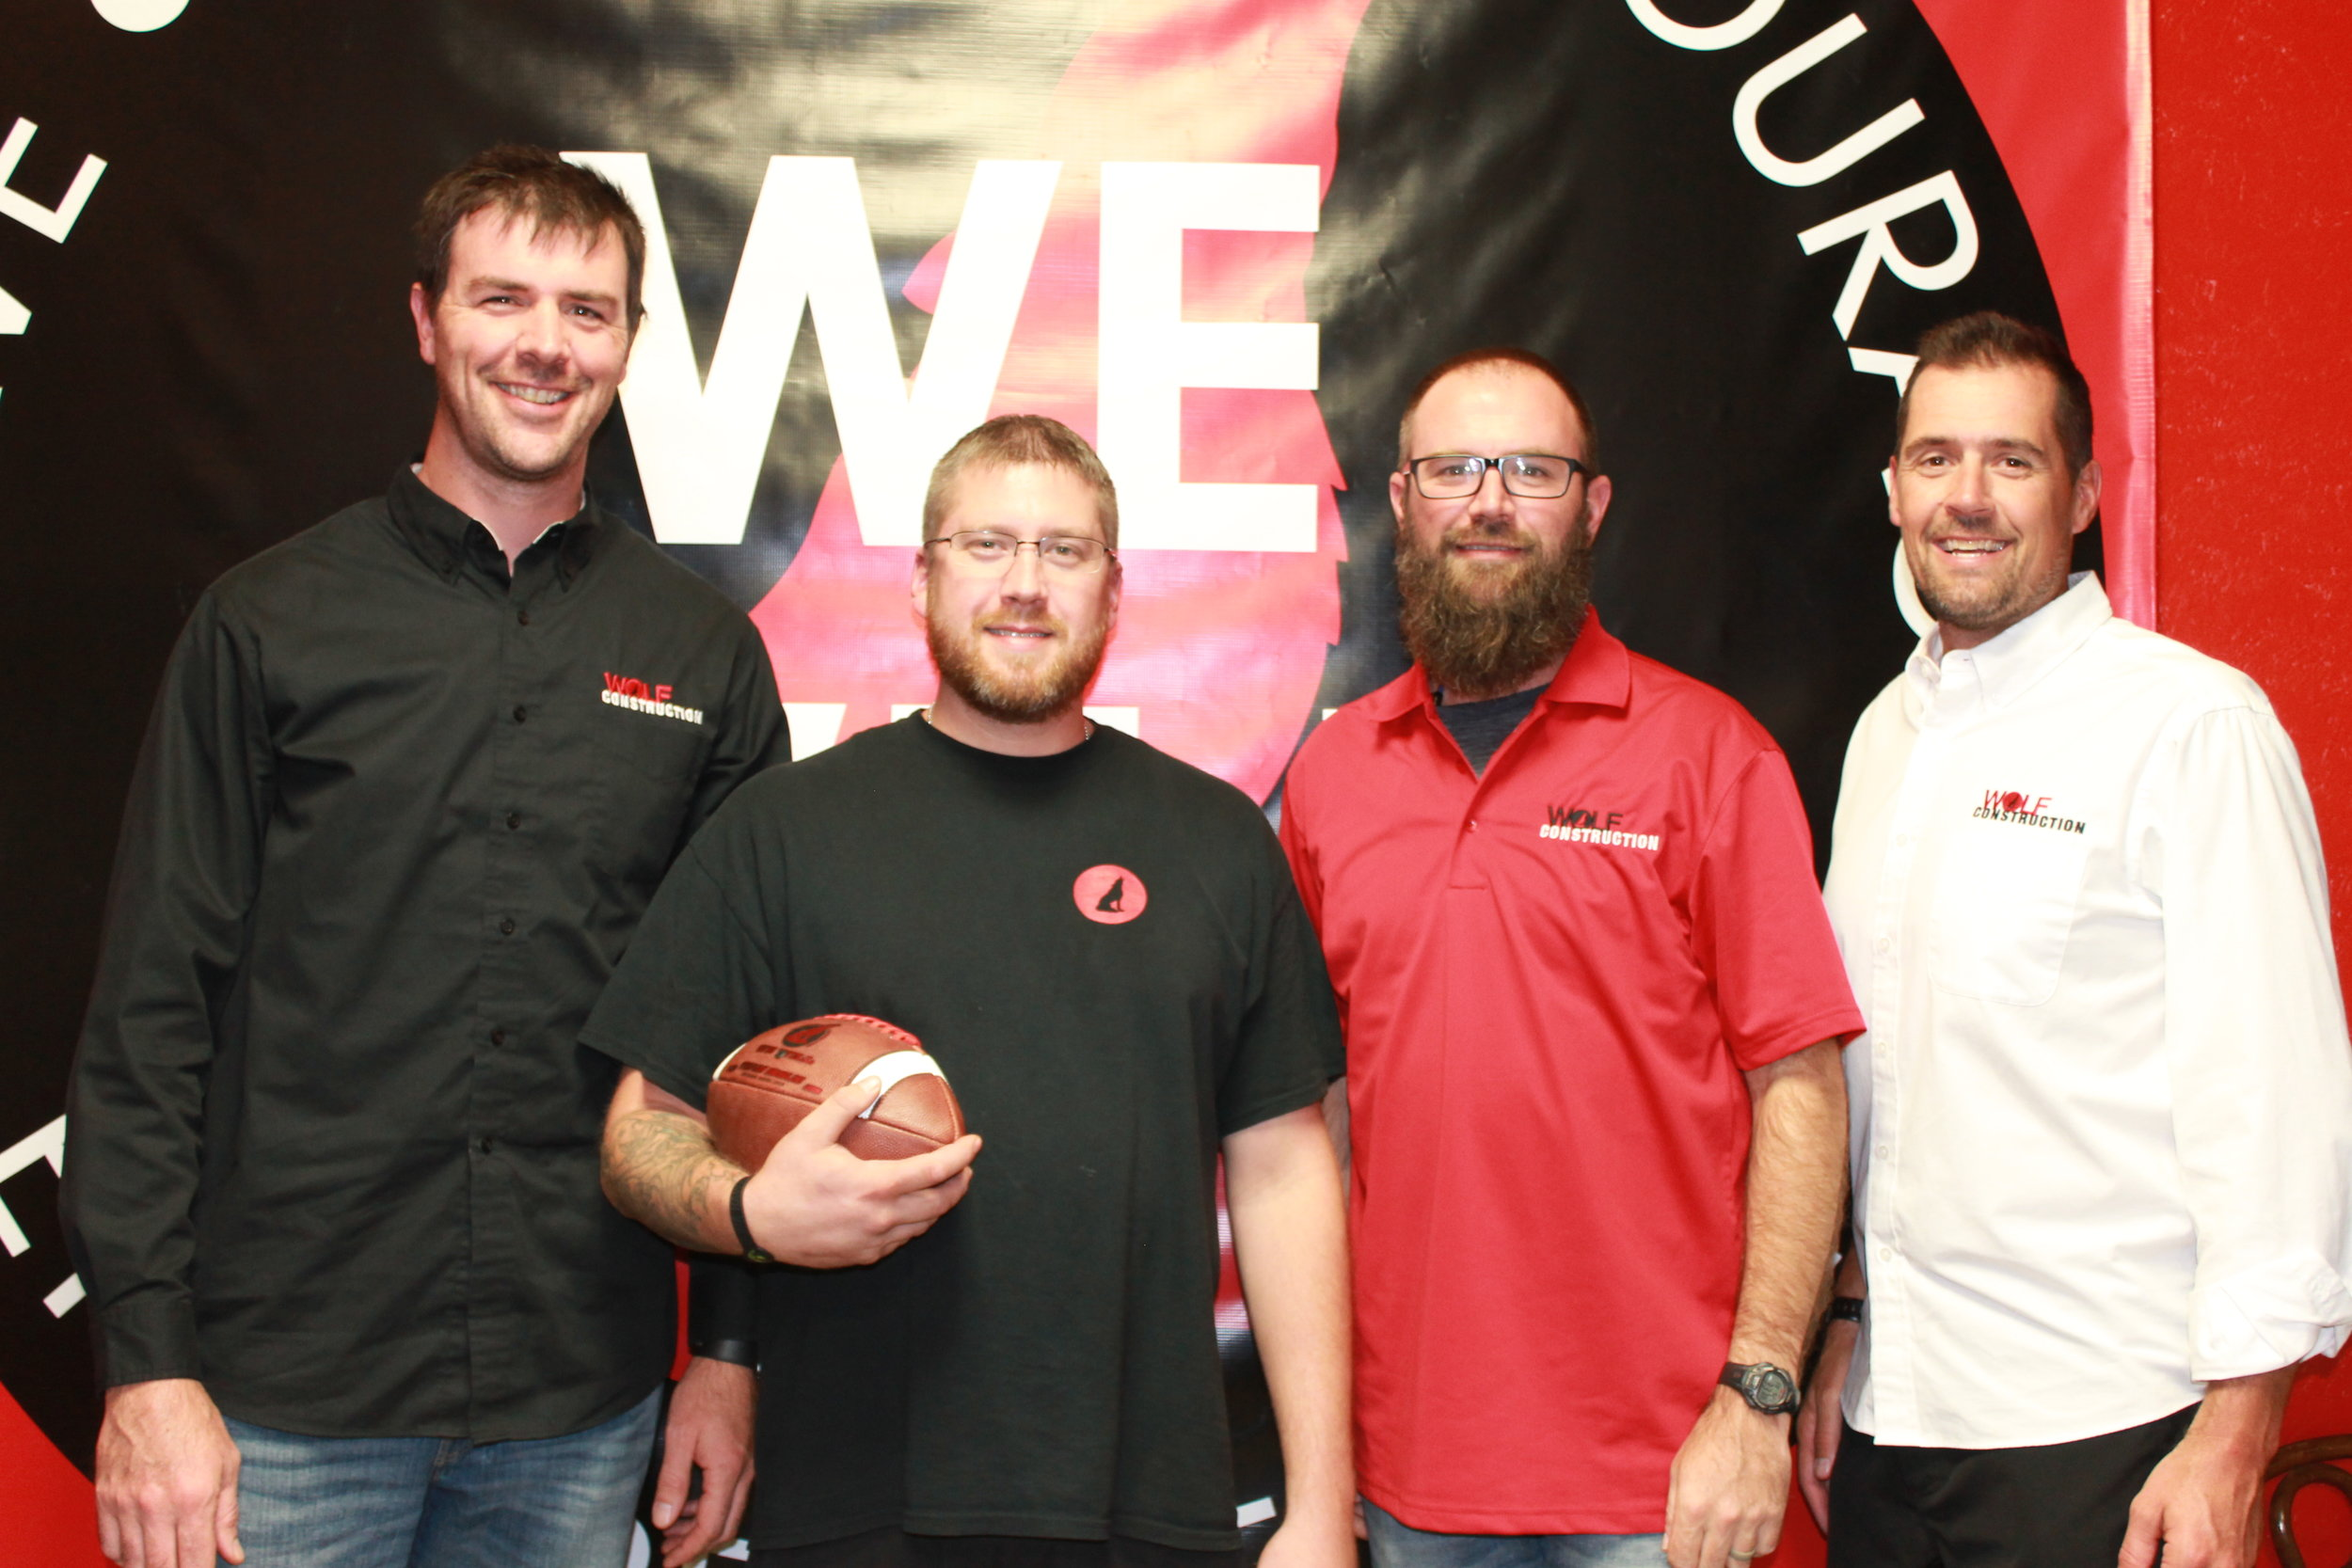 Stephen Huebshcen was presented the Wolf Construction Services, Inc. Game Ball in September 2018. A Foremen for the Trim Division, Stephen has taken on multiple large projects with confidence and shown quiet leadership both on and off the job site. A member of the Wolf Team since 2016, Stephen is a dedicated team member who is always working toward solutions.  Stephen and his family live in Pella. Pictured: R VanDis, S Huebschen, J VanDis, B Hoch